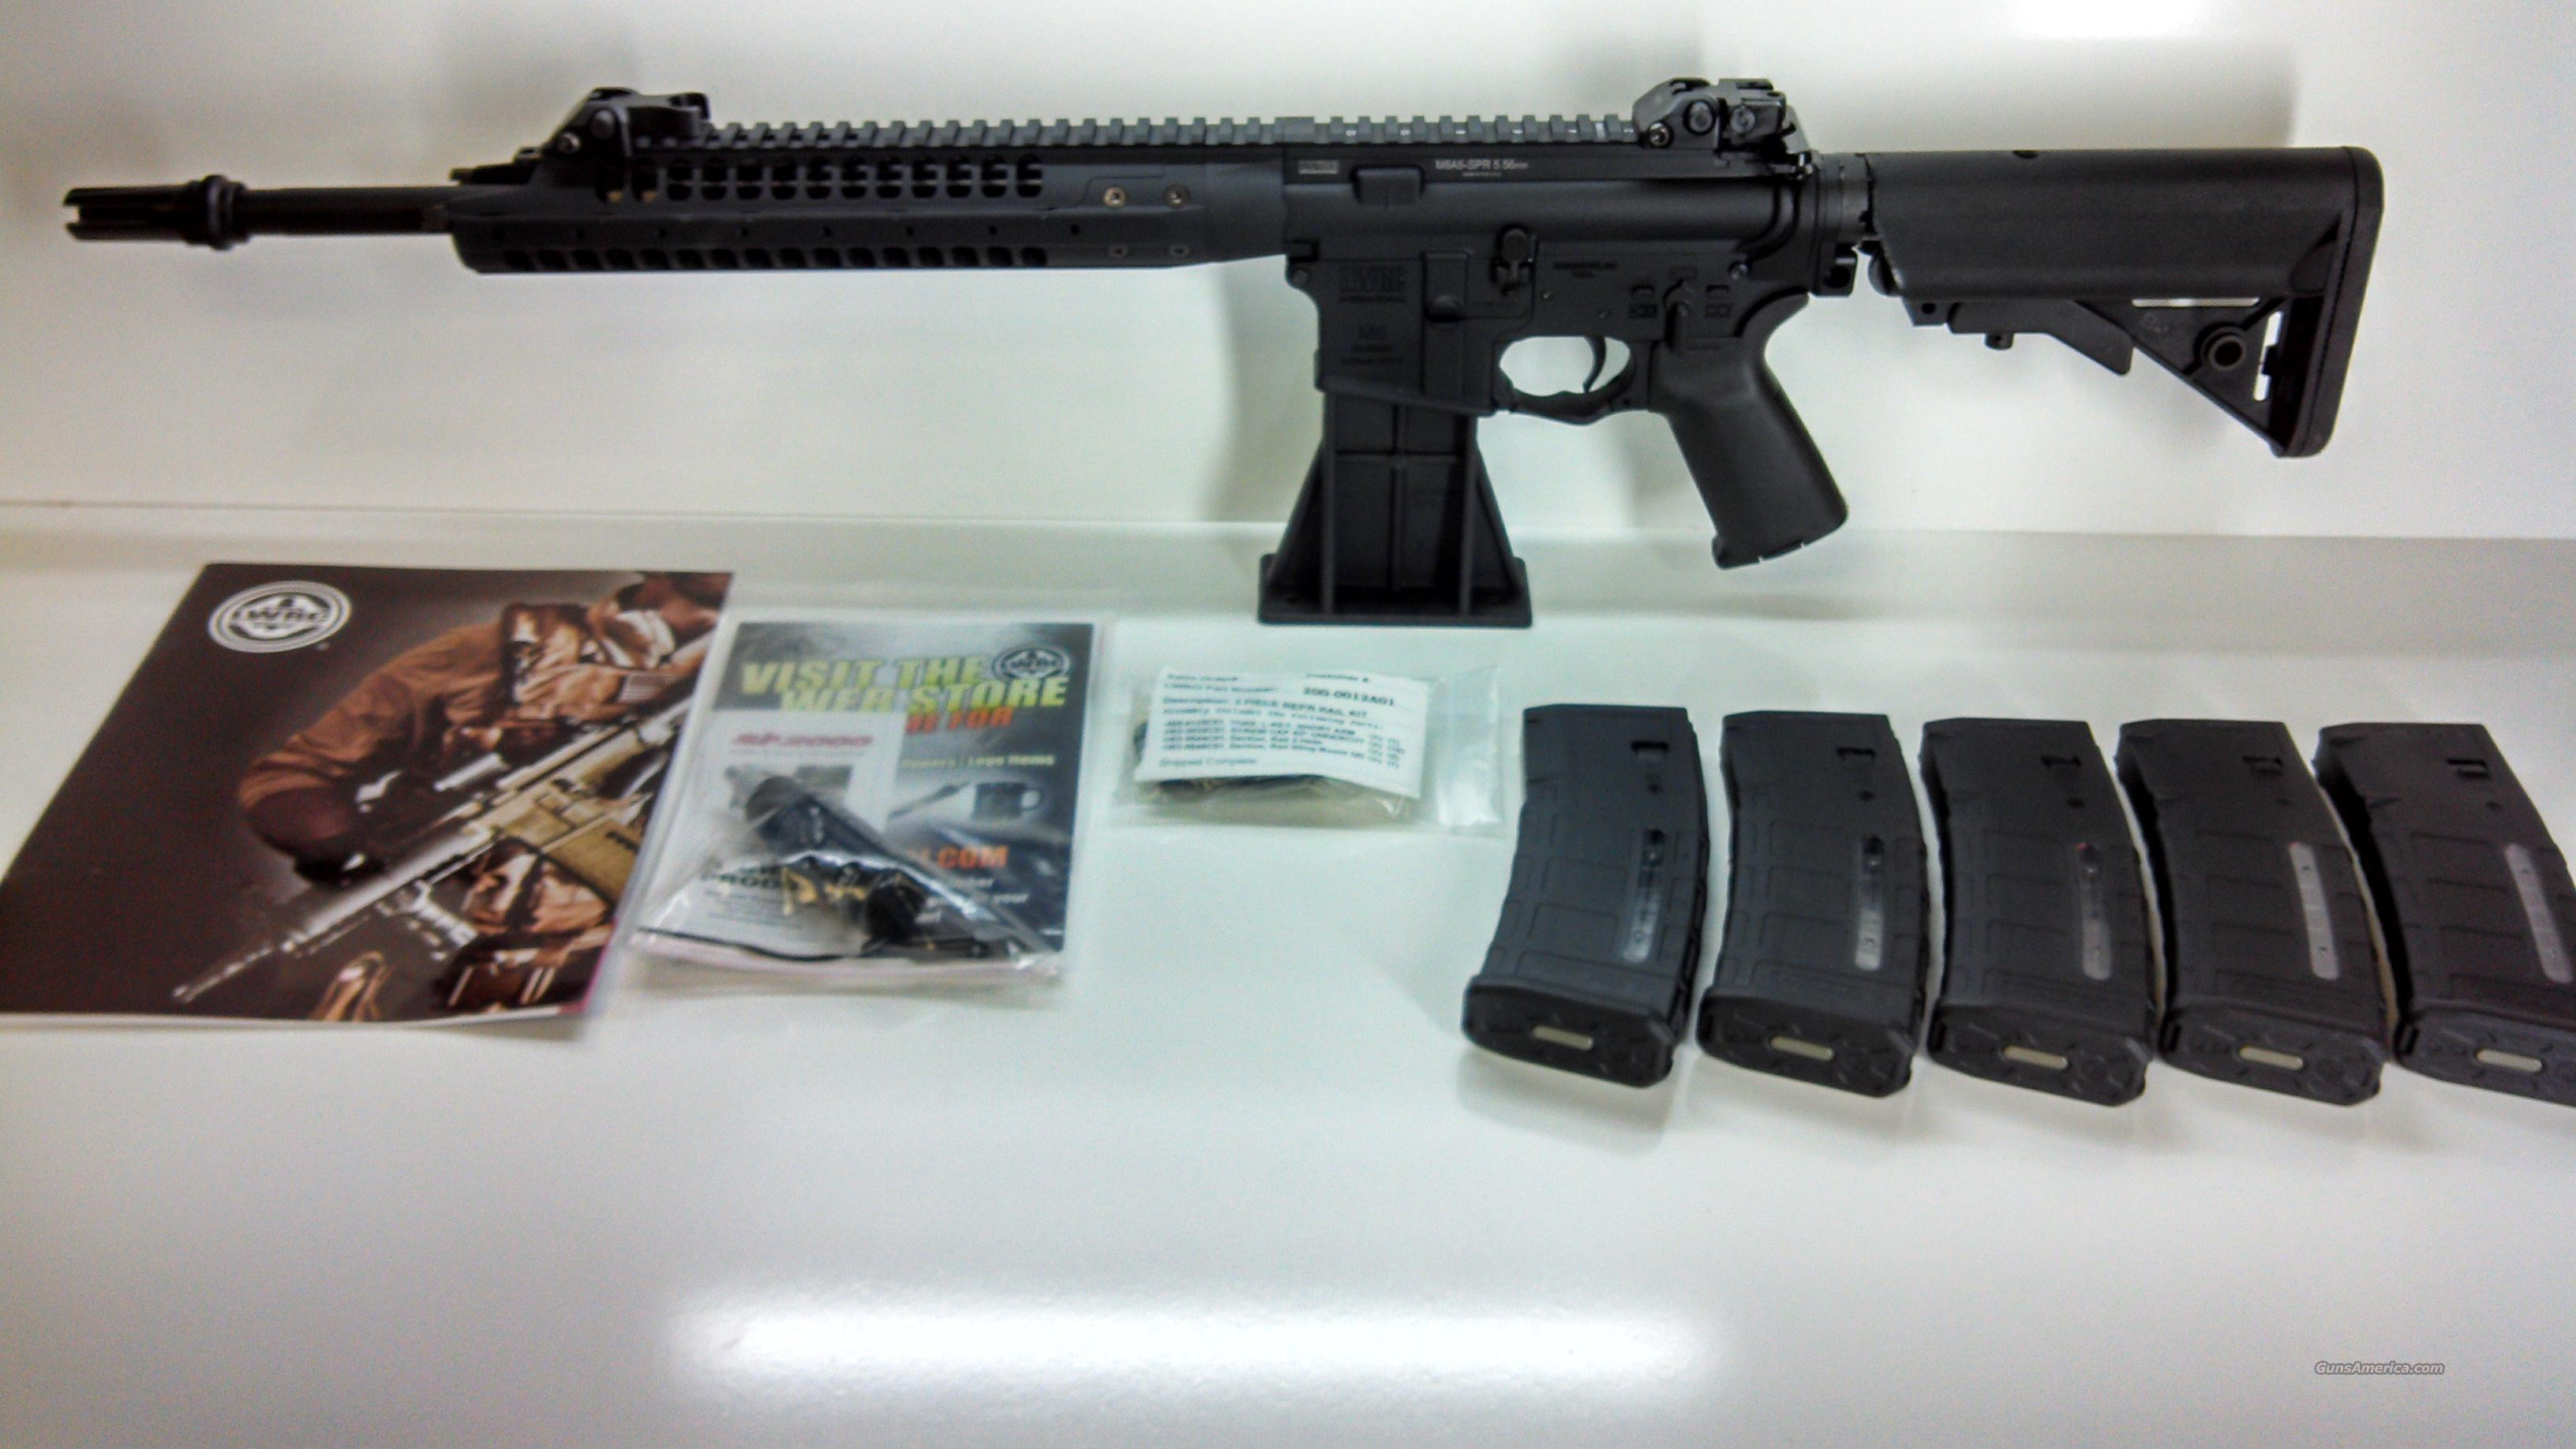 "LWRC M6A5 Semi-auto Rifle 5.56 NATO 16.1"" Barrel SPR - PMAGS INCLUDED - LIMITED EDITION  Guns > Rifles > Tactical Rifles Misc."